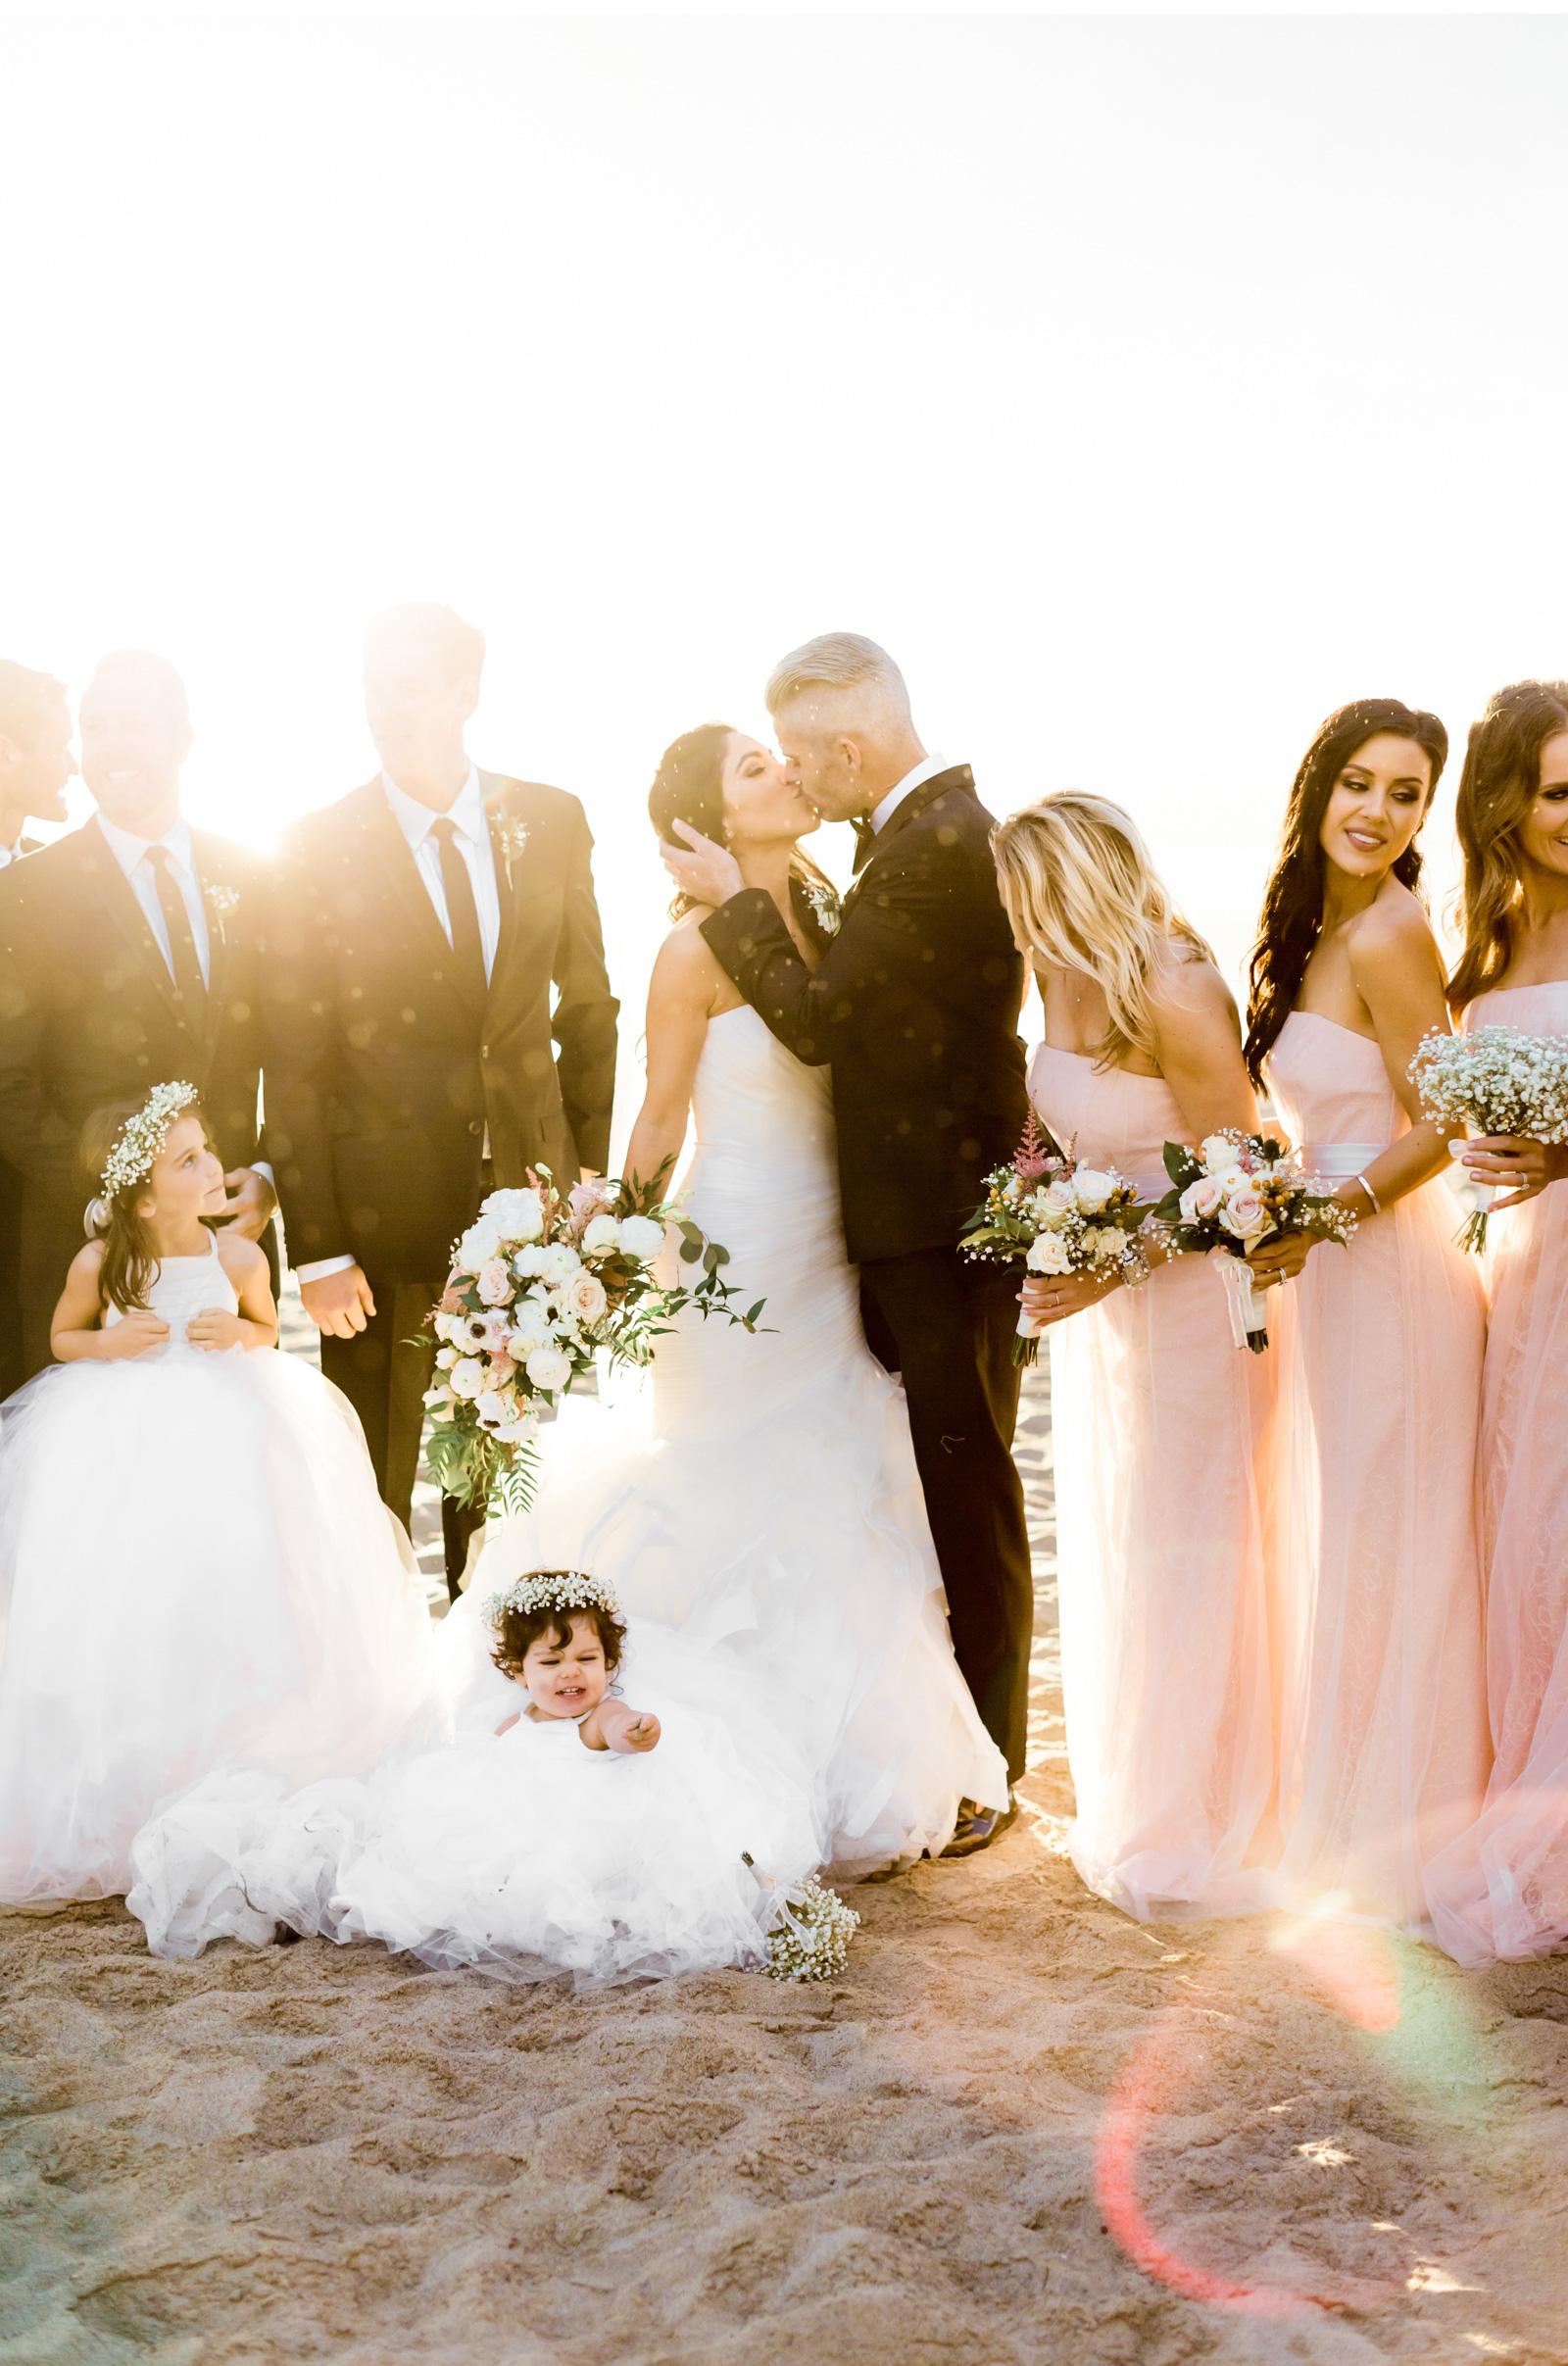 Southern-California-Fine-Art-Wedding-Photographer-Natalie-Schutt-Photography_14.jpg